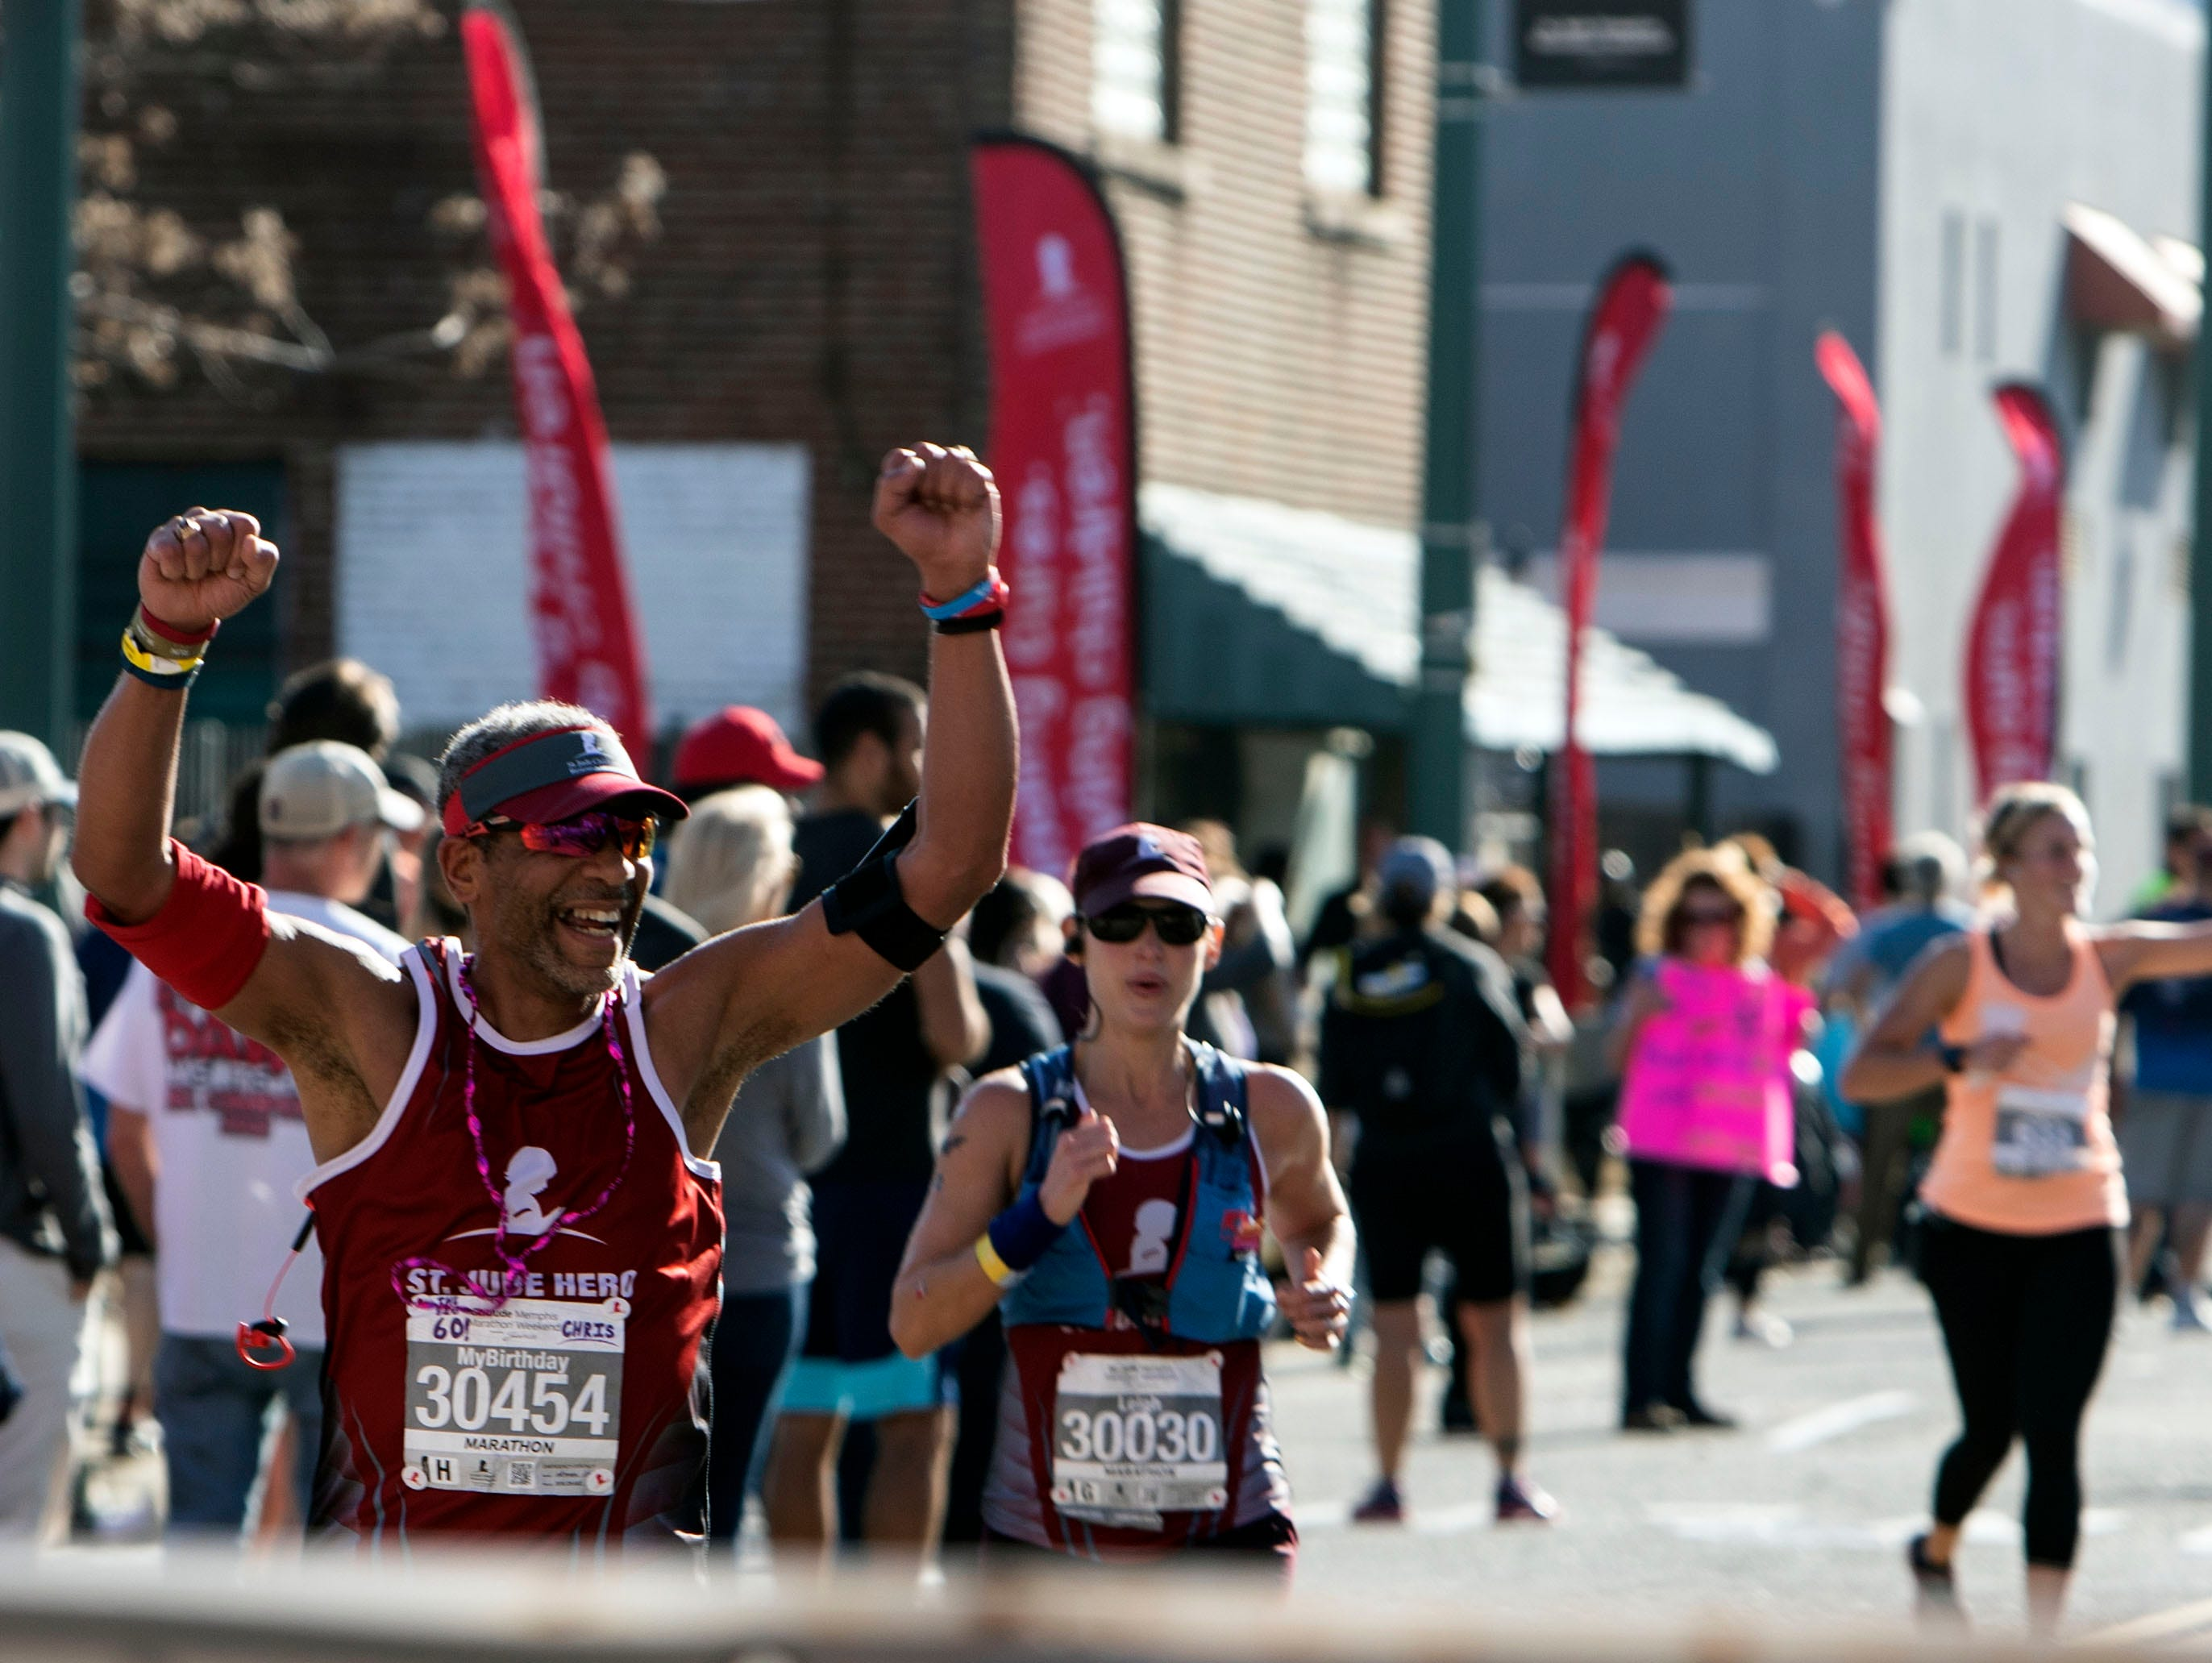 Runners make their way downtown to the finish line  during the St. Jude Memphis Marathon on Saturday, Dec. 1, 2018.